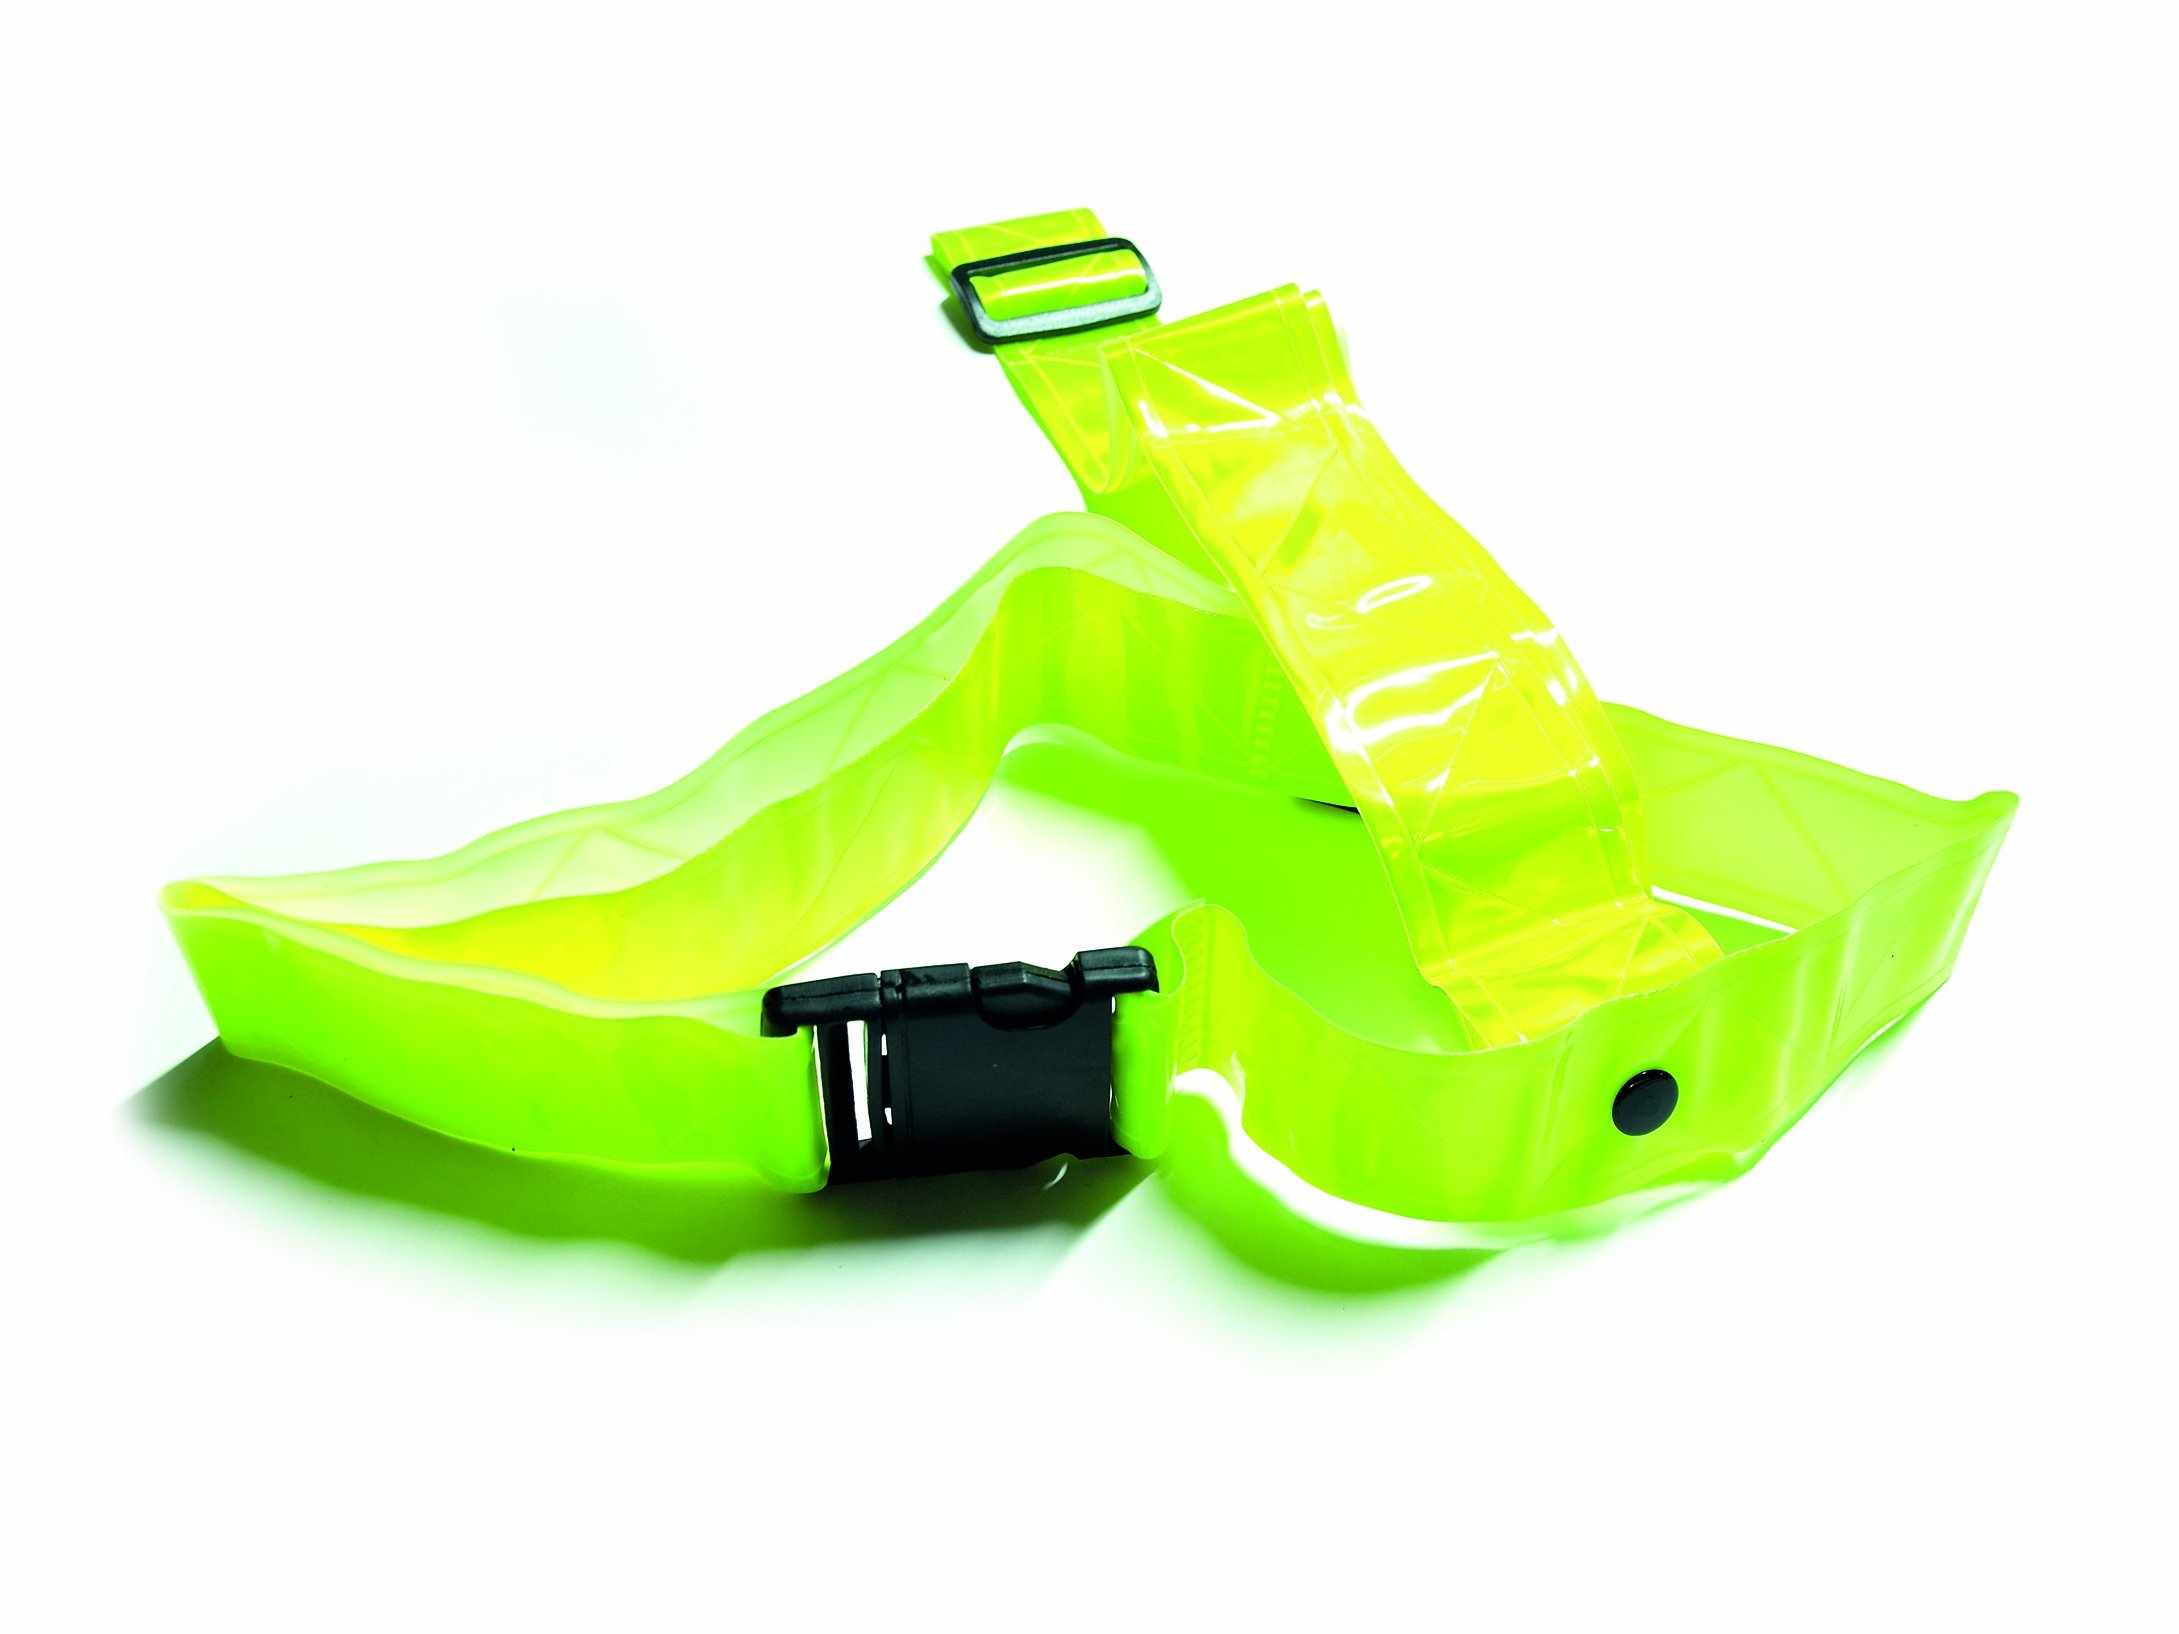 The safety belt includes two light strips for additional visibility.